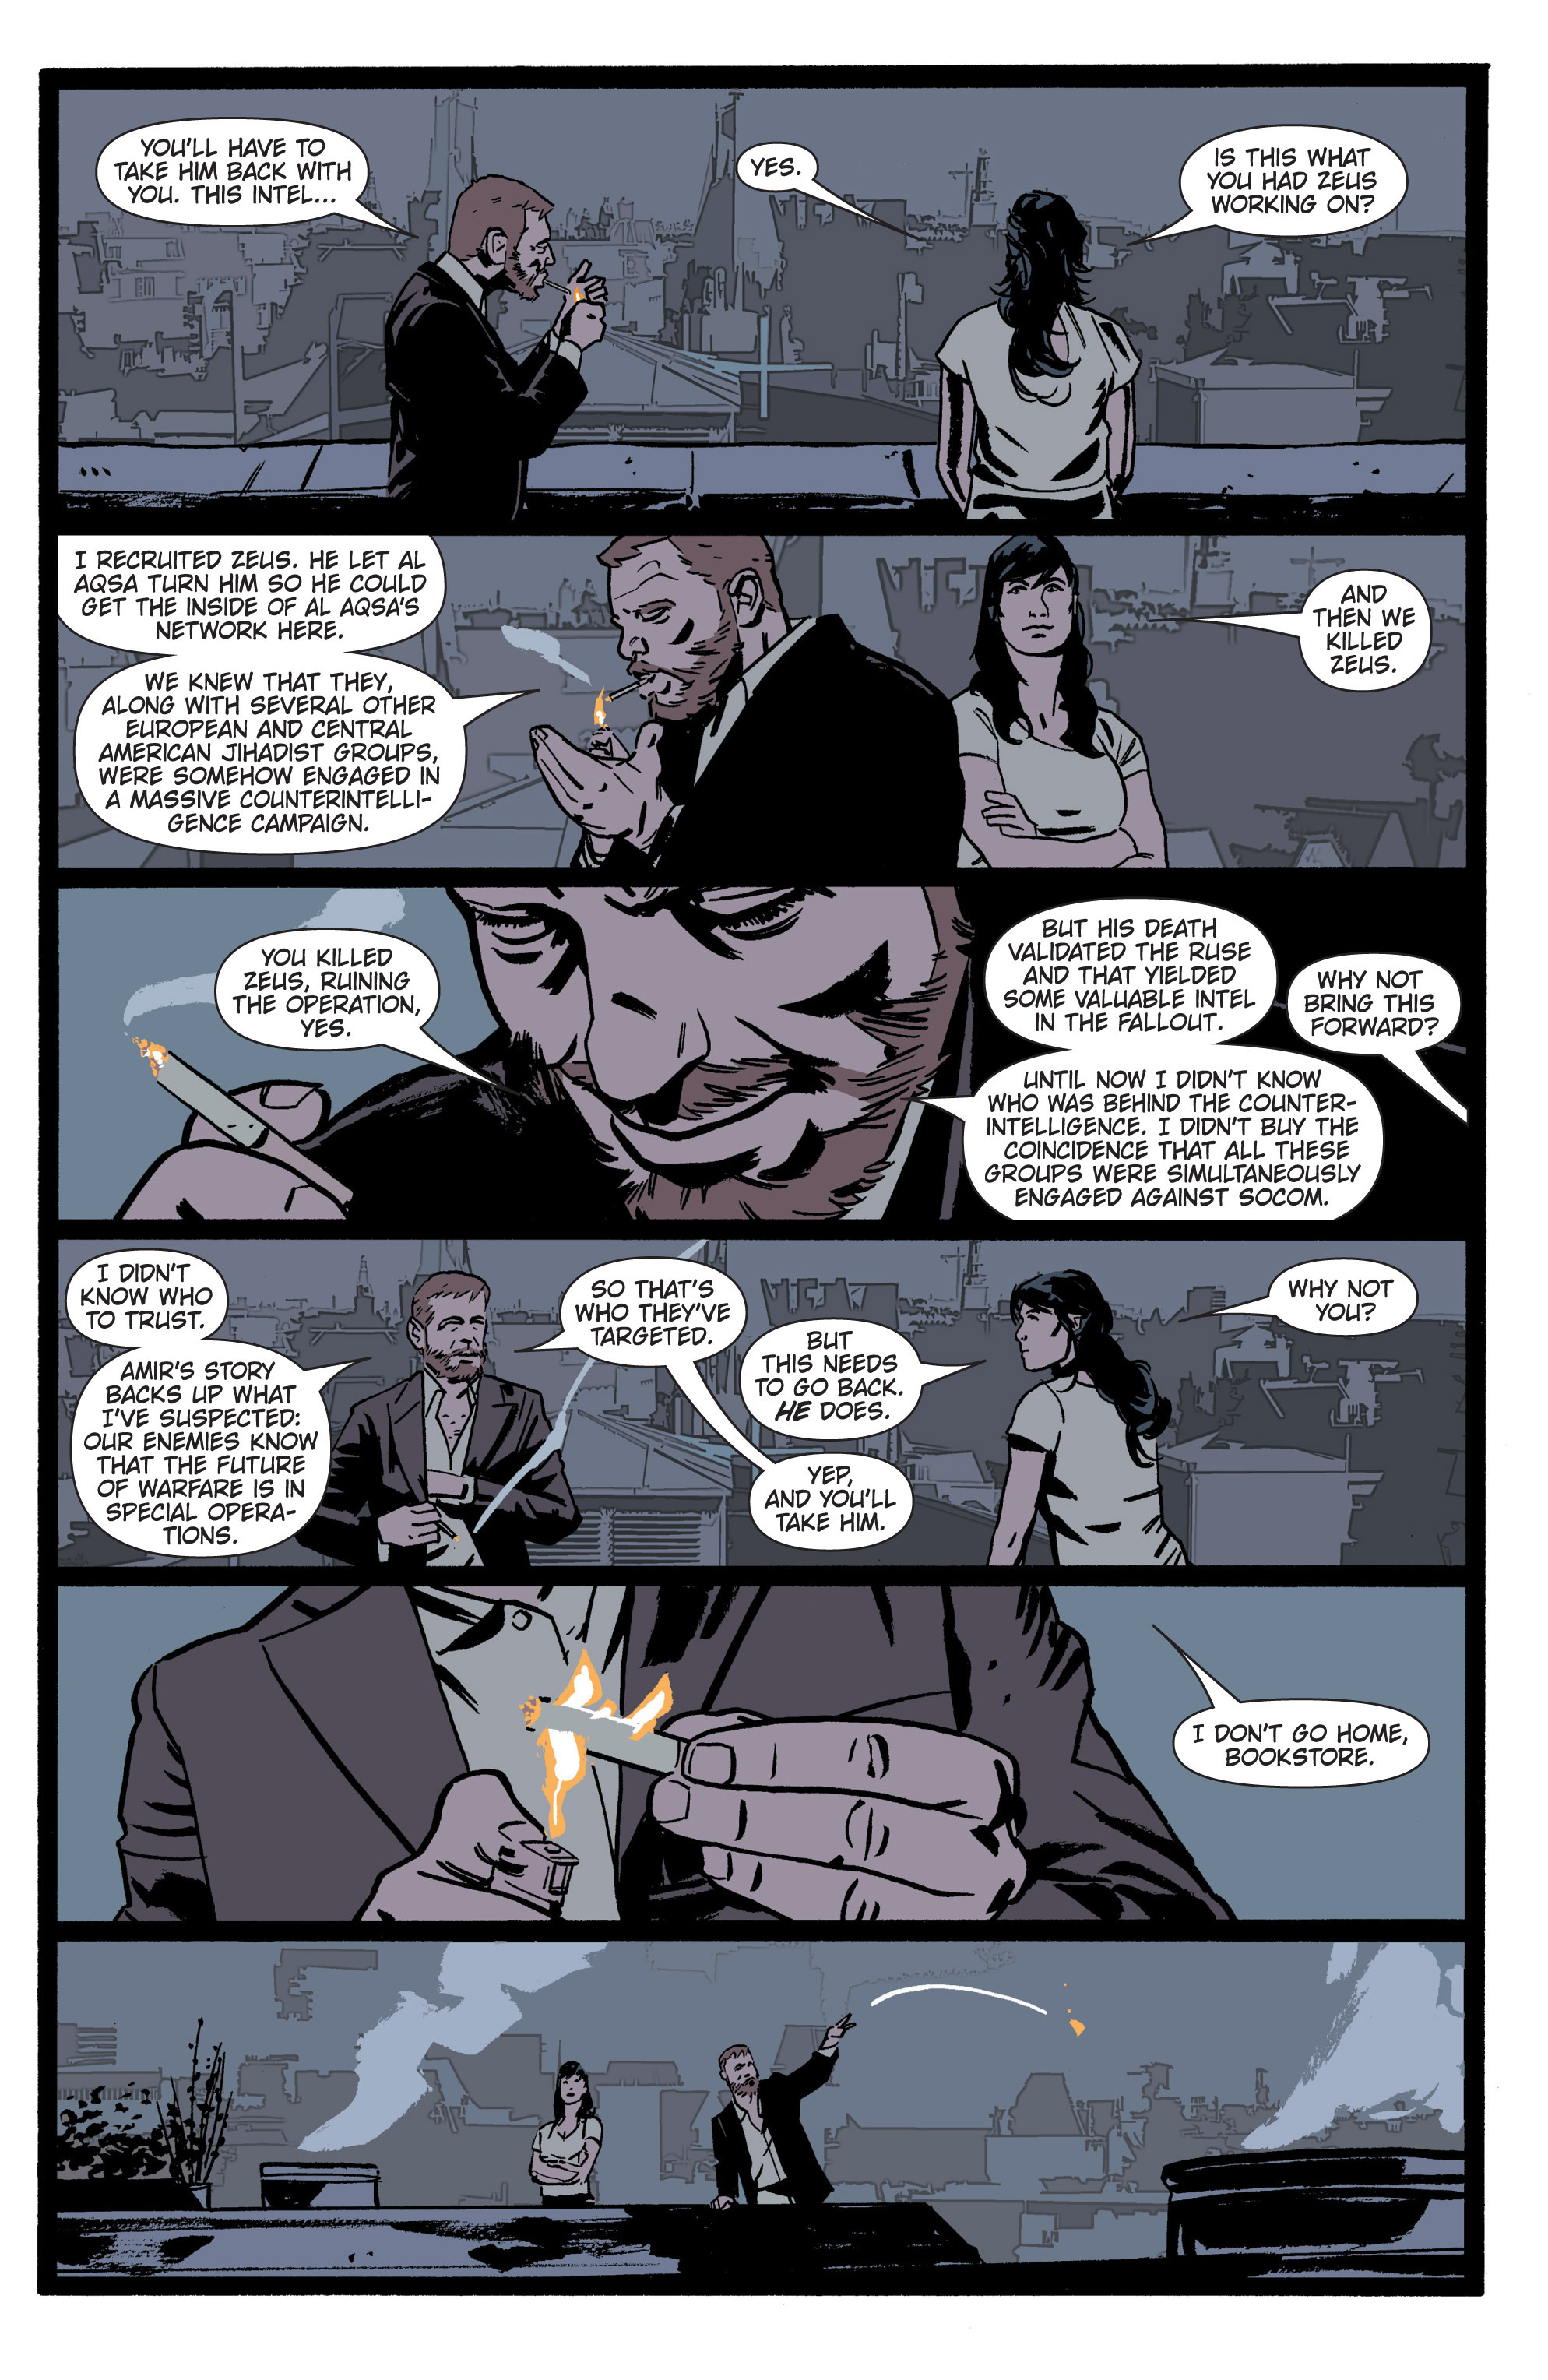 Read online The Activity comic -  Issue #14 - 20